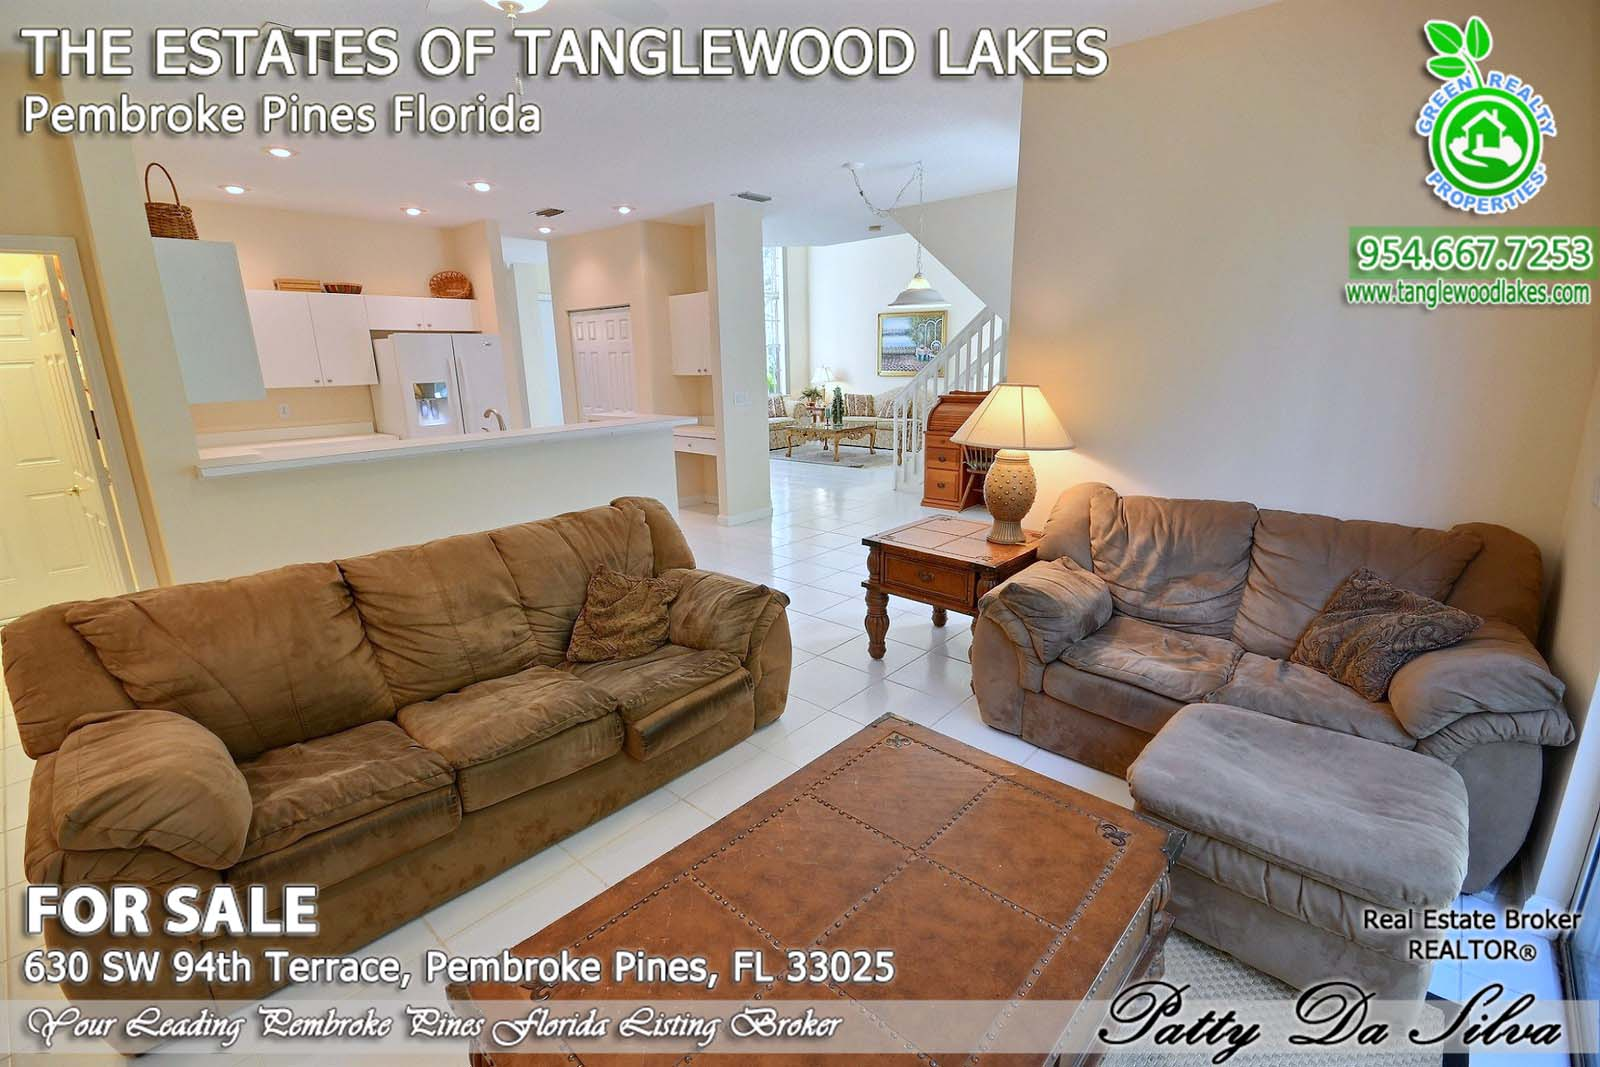 Real Estate in Tanglewood Lakes in Pembroke Pines